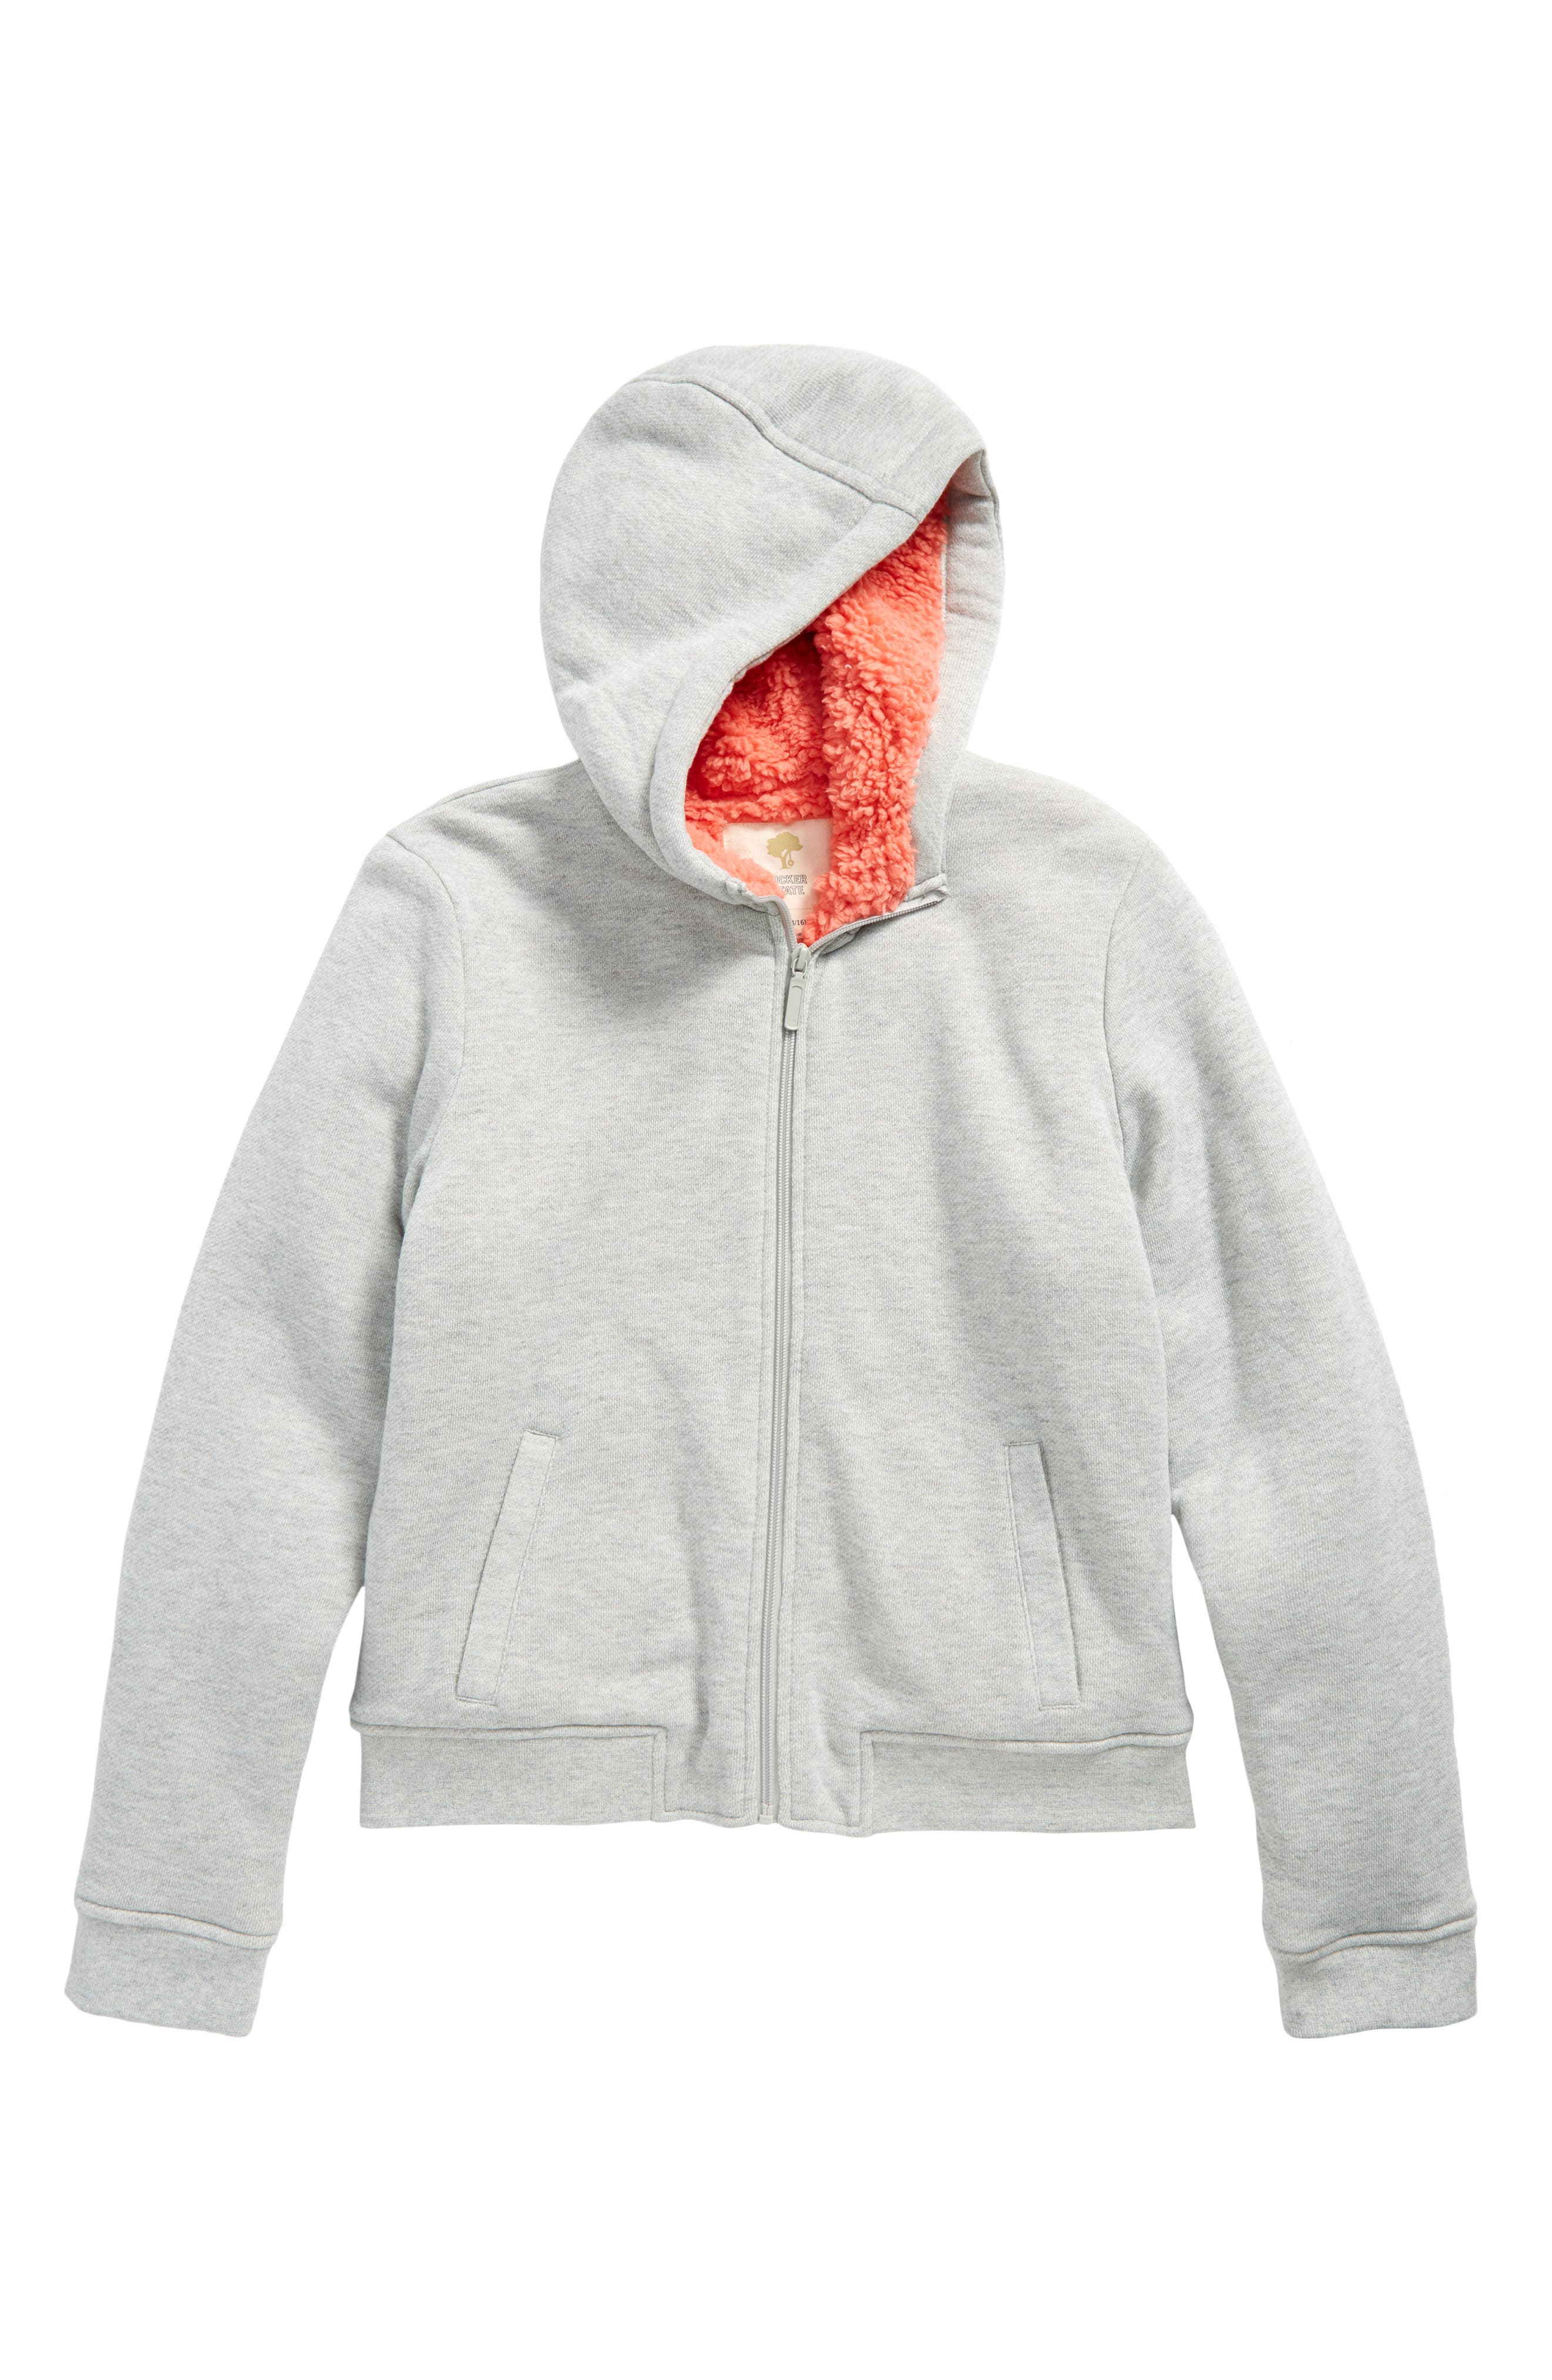 Fleece Lined Hoodie,                             Main thumbnail 1, color,                             Grey Heather